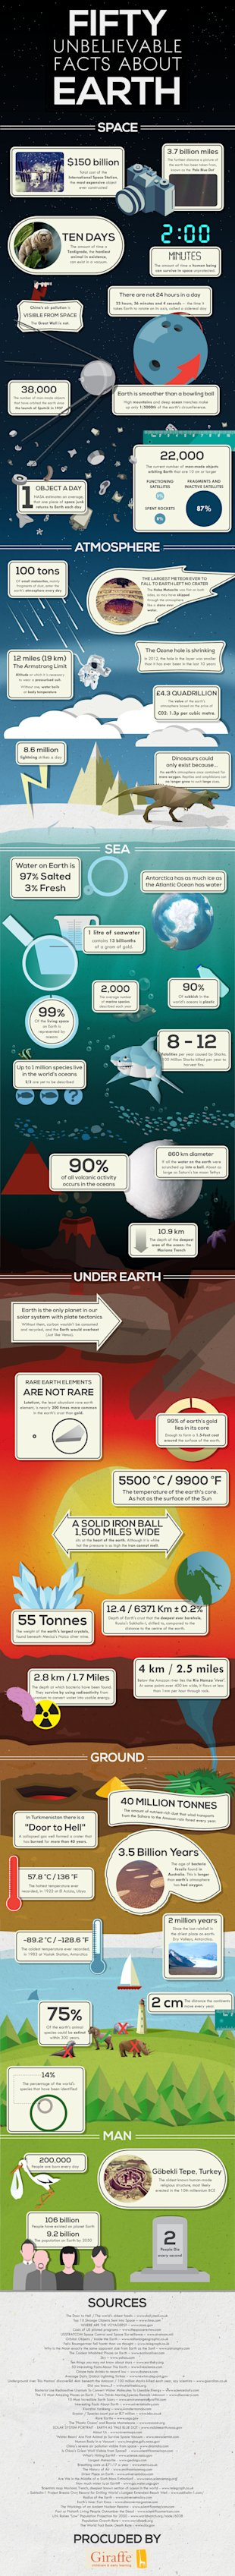 50 Unbelievable Facts About Earth [Infographic] image 50 facts about earth3